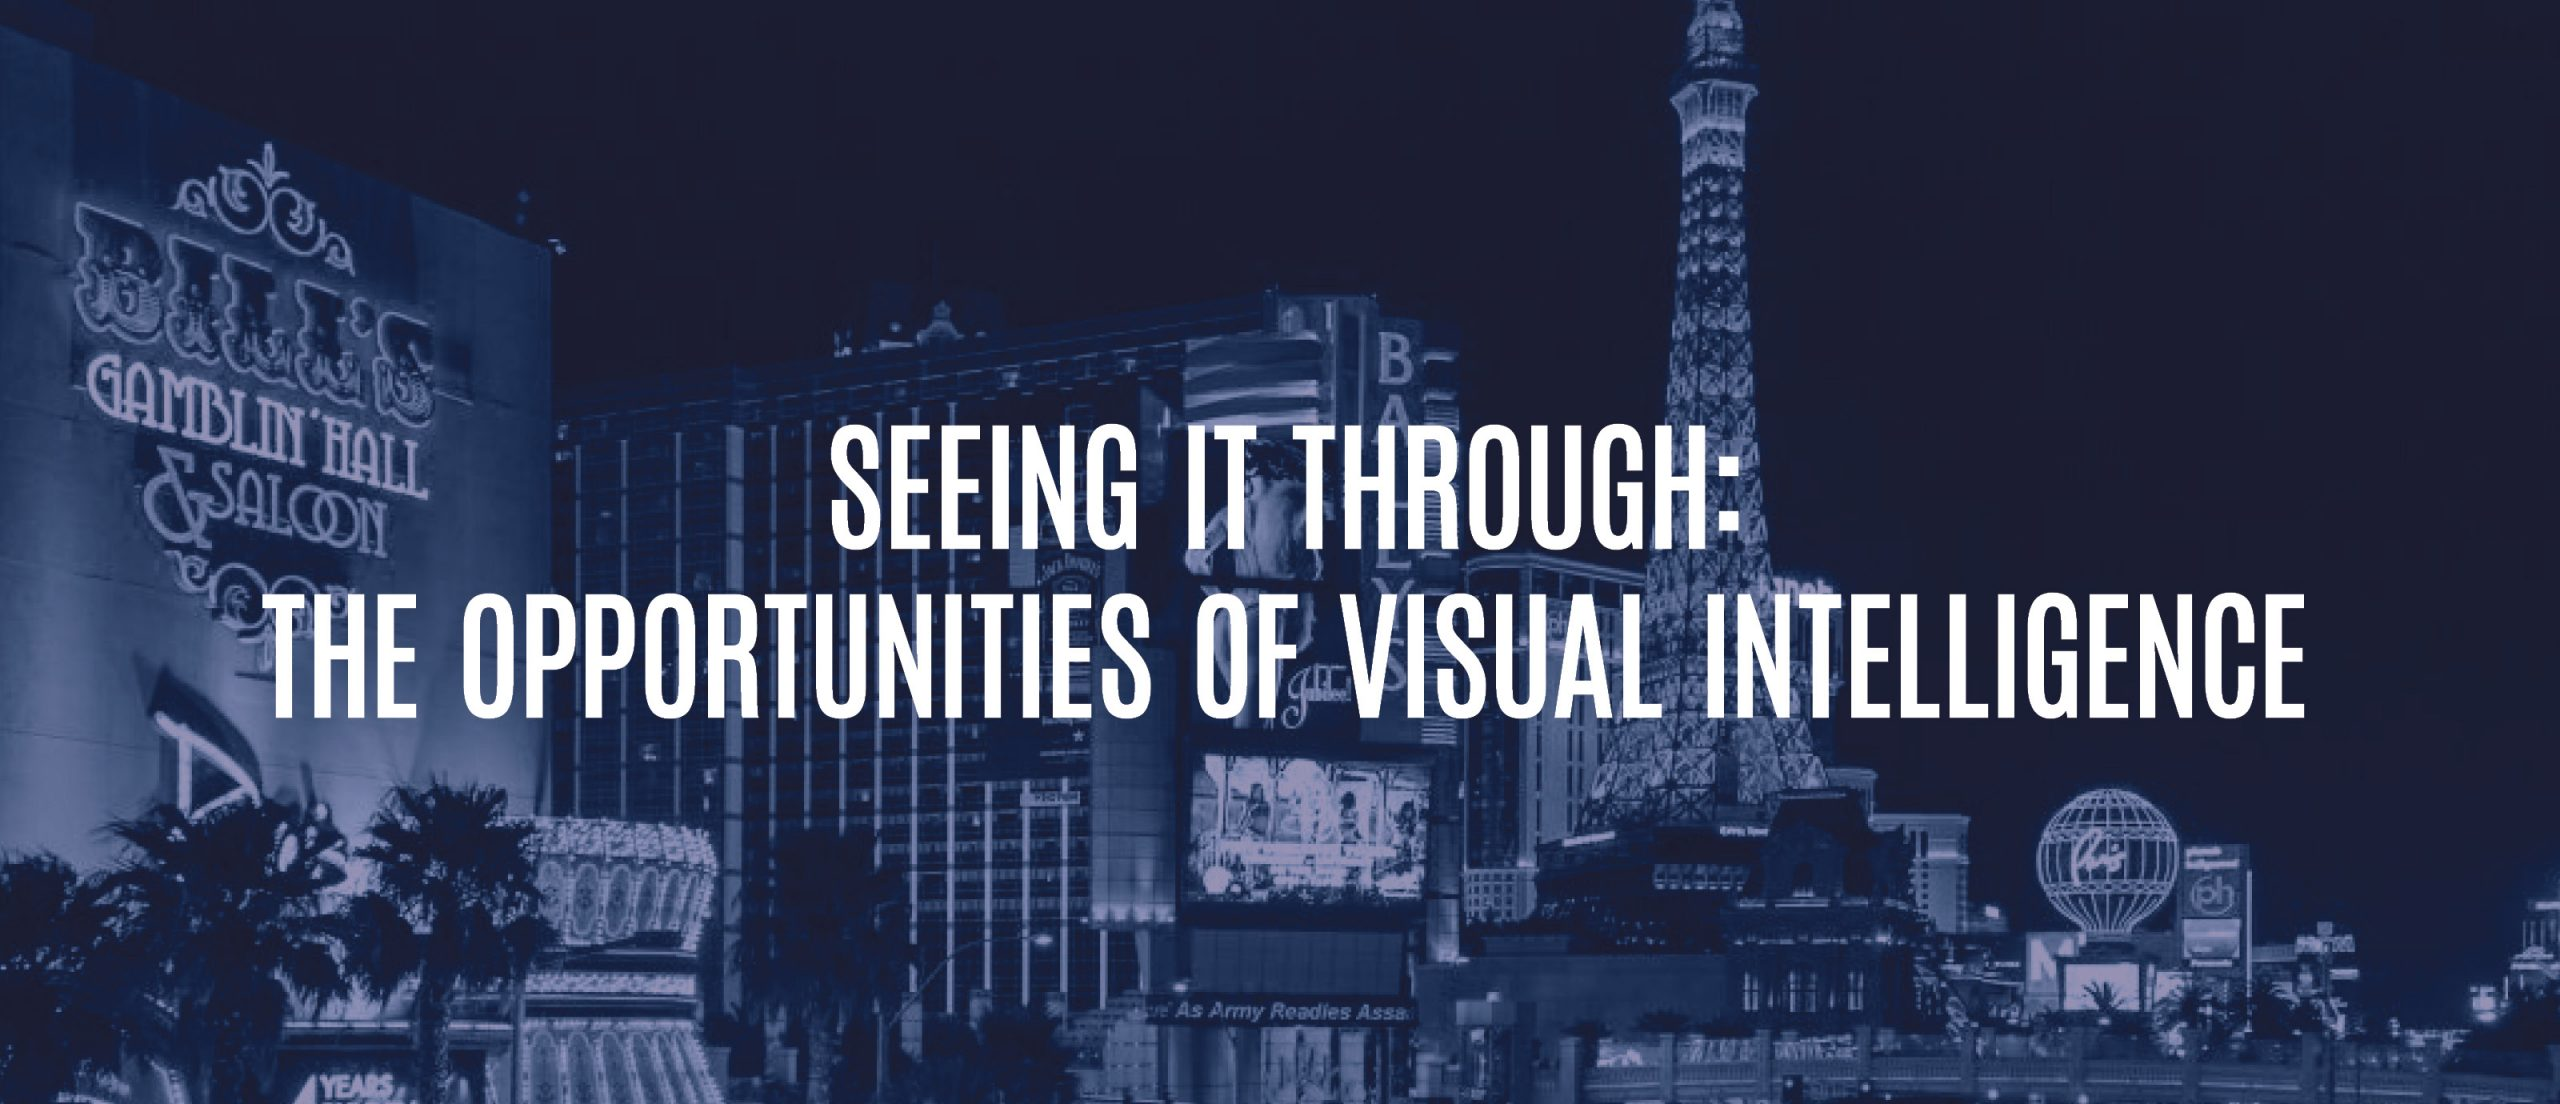 Blog Title - Seeing it through: The opportunities of visual intelligence